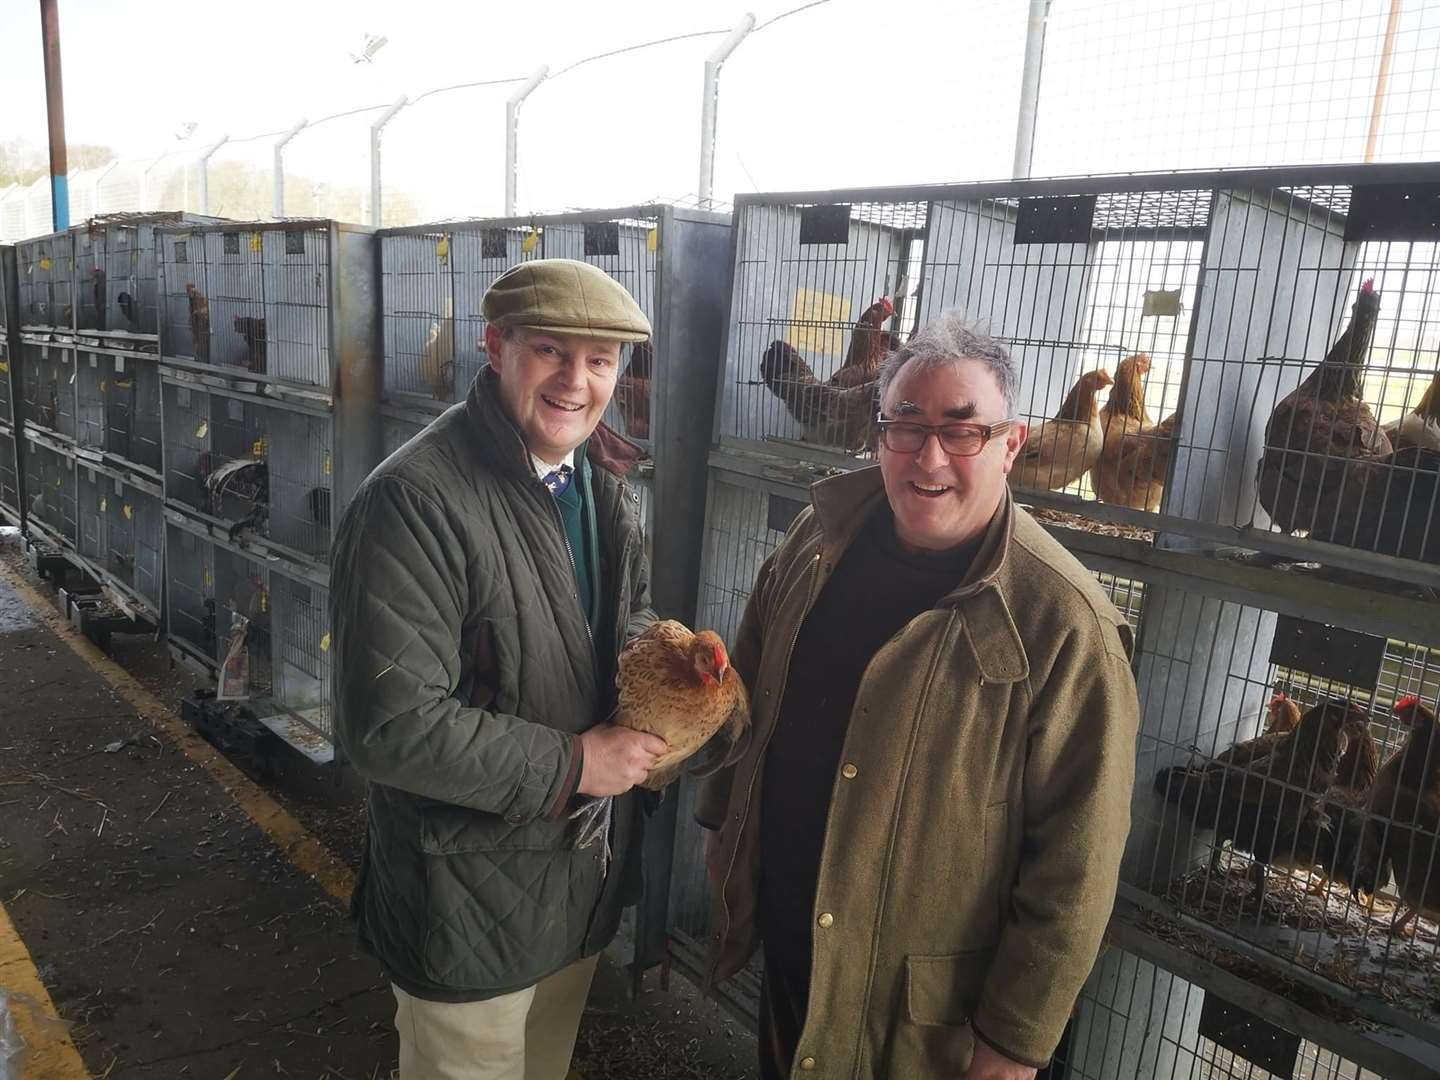 Fabian Eagle is pictured on the left with Desmond MacCarthy. Picture: SUBMITTED